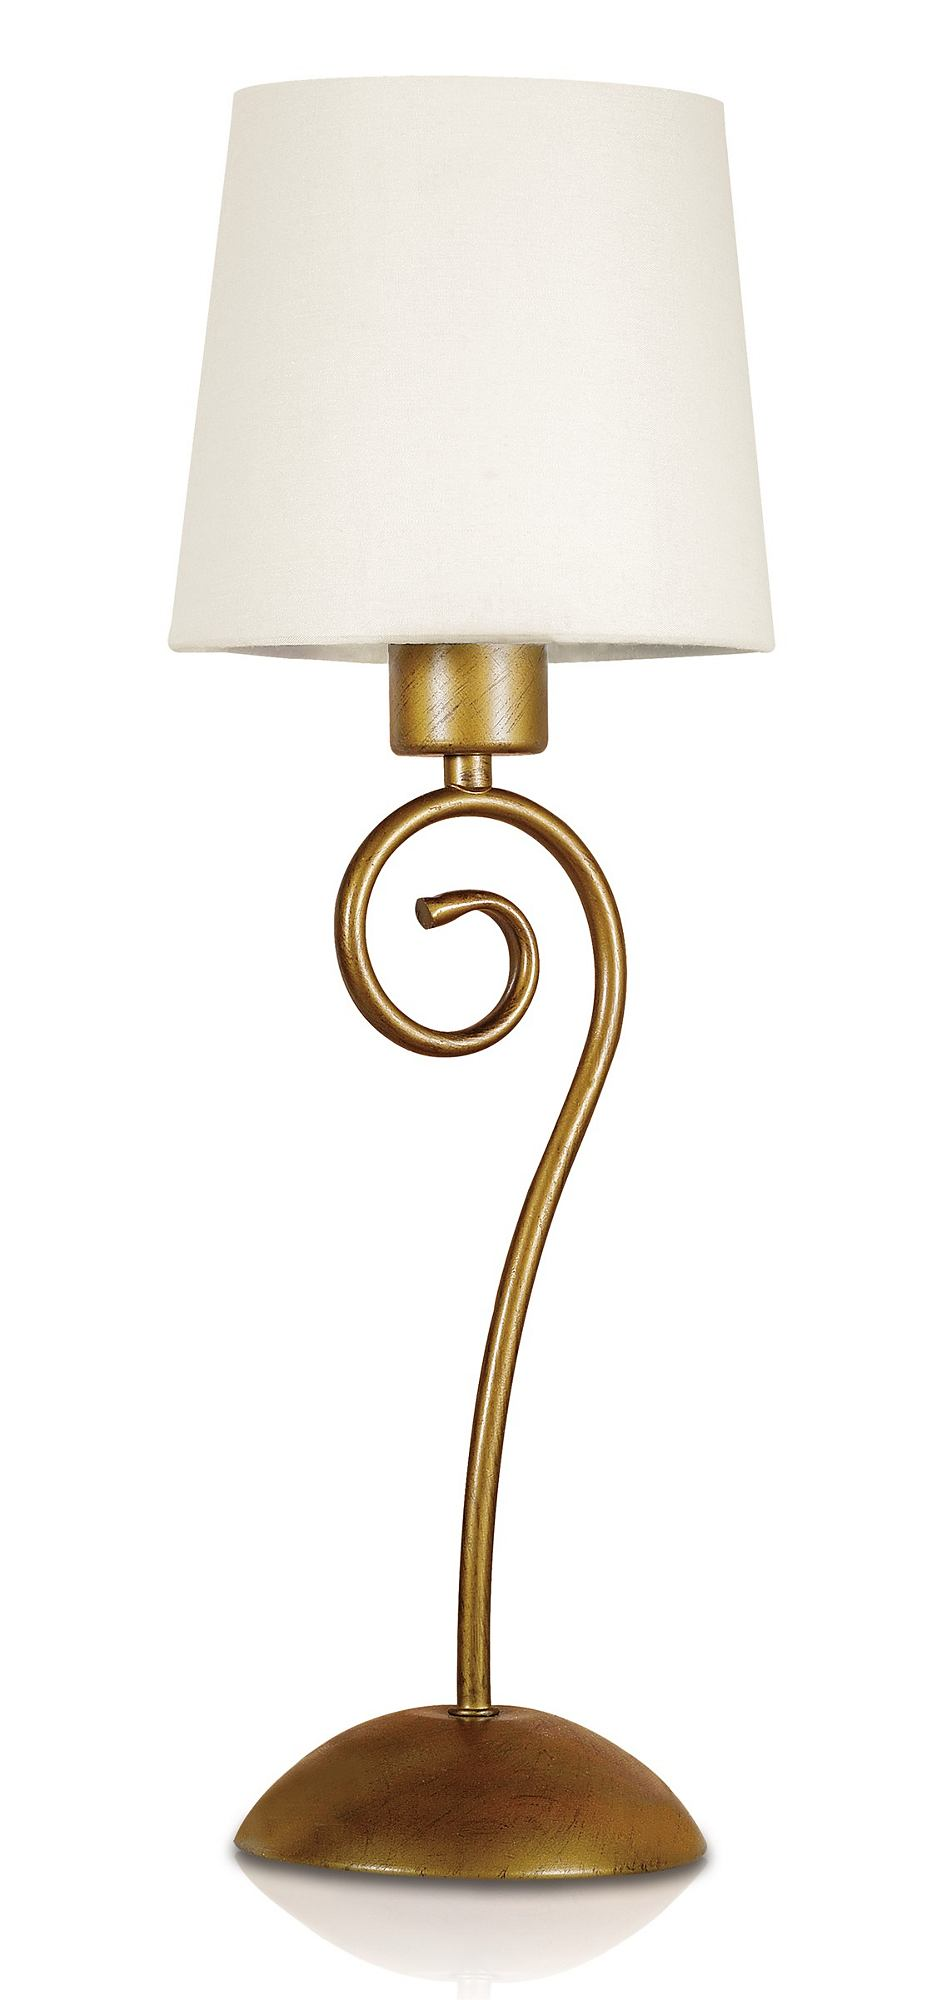 - Roomstylers - 37739 Gold Classic table